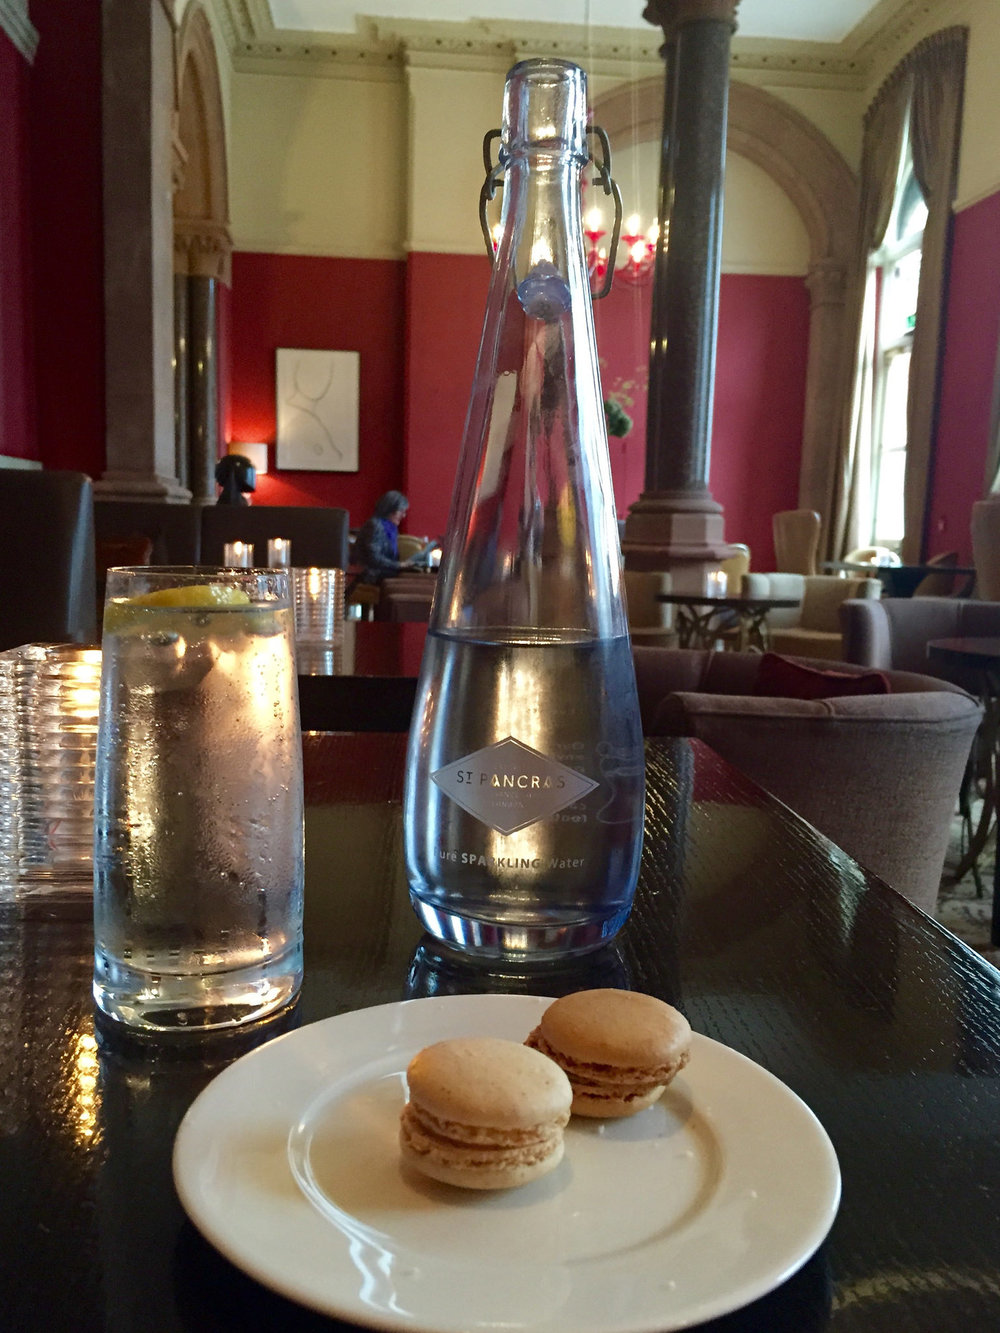 Macaroons and Sparkling Water